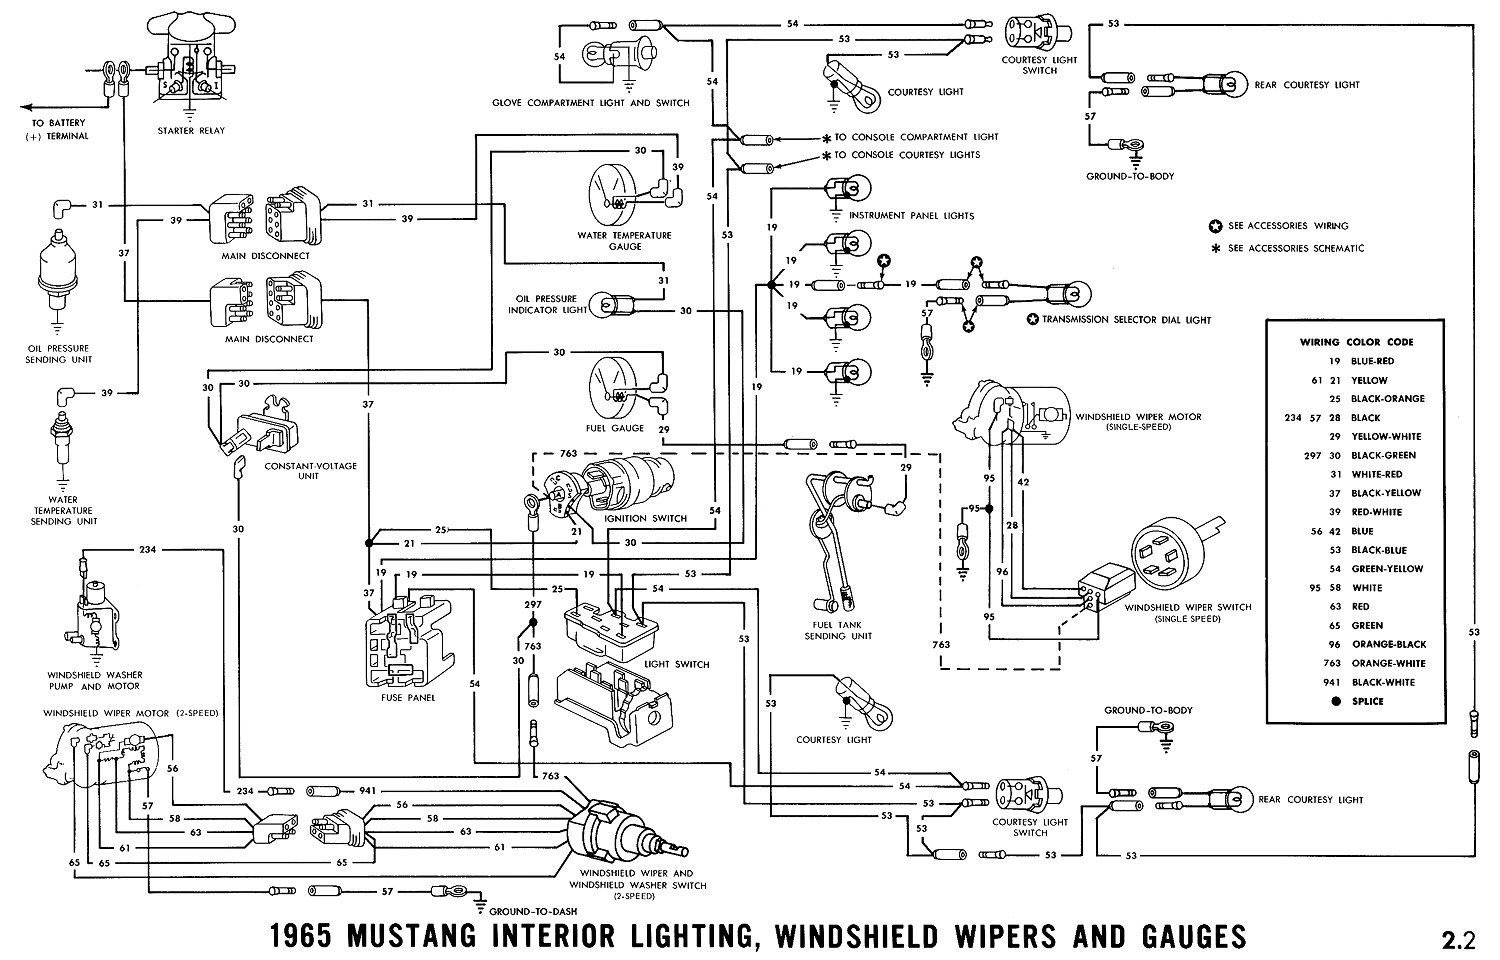 2002 Ford Mustang Fuse Panel Diagram Turn Signal Schematics F350 Wiring 1965 Diagrams Average Joe Restoration 2004 Box